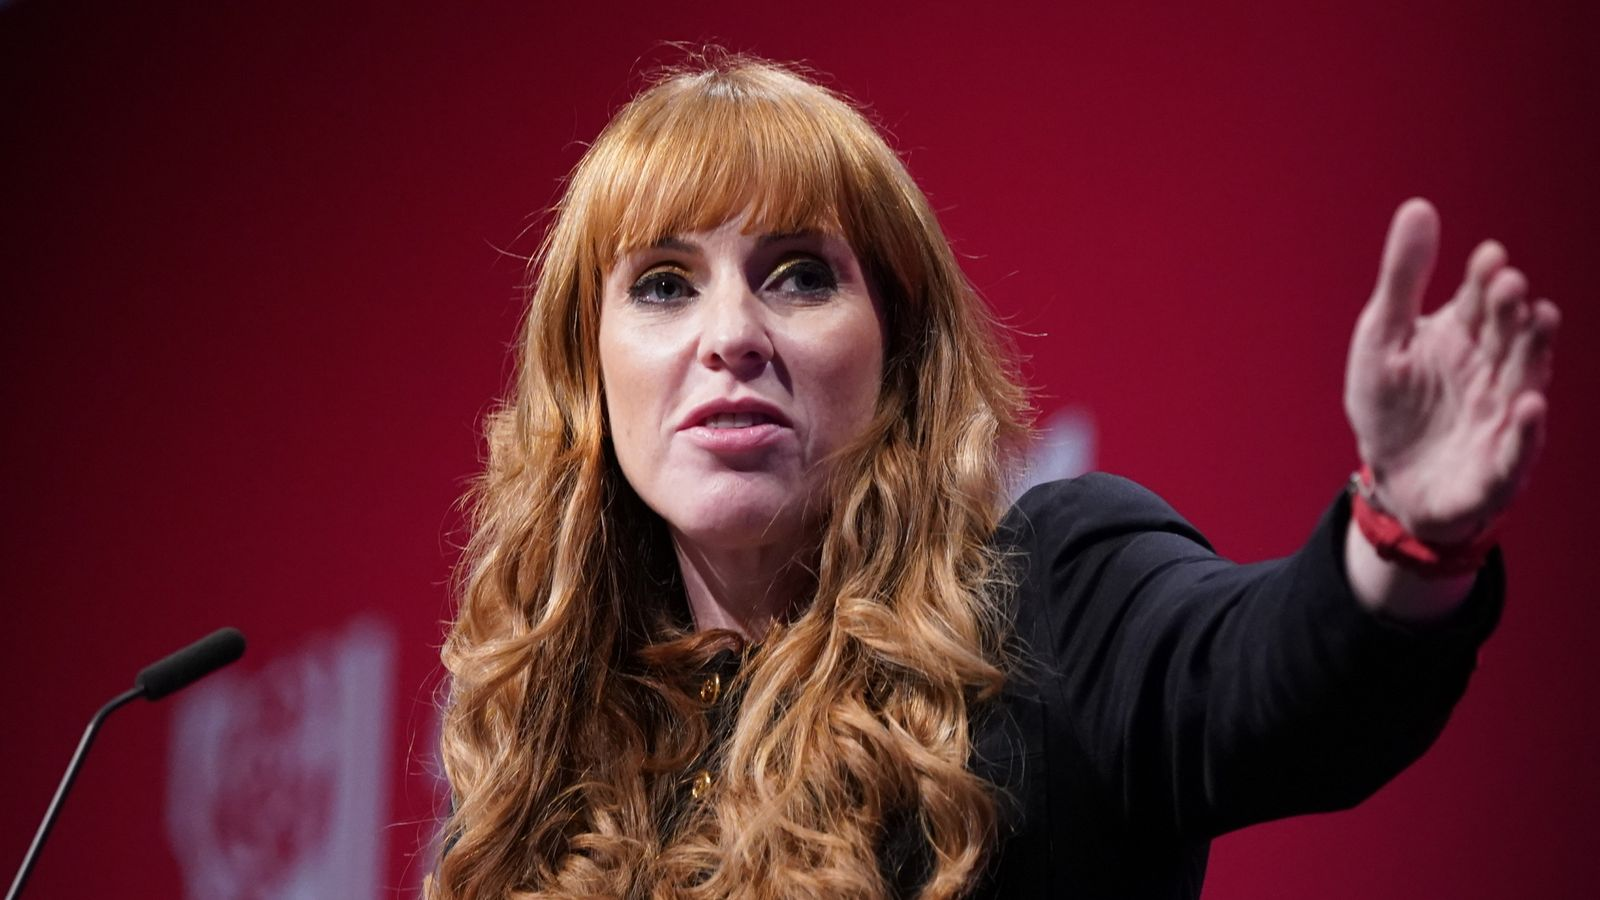 Labour conference: Deputy leader Angela Rayner doubles down on Tory 'scum' comments